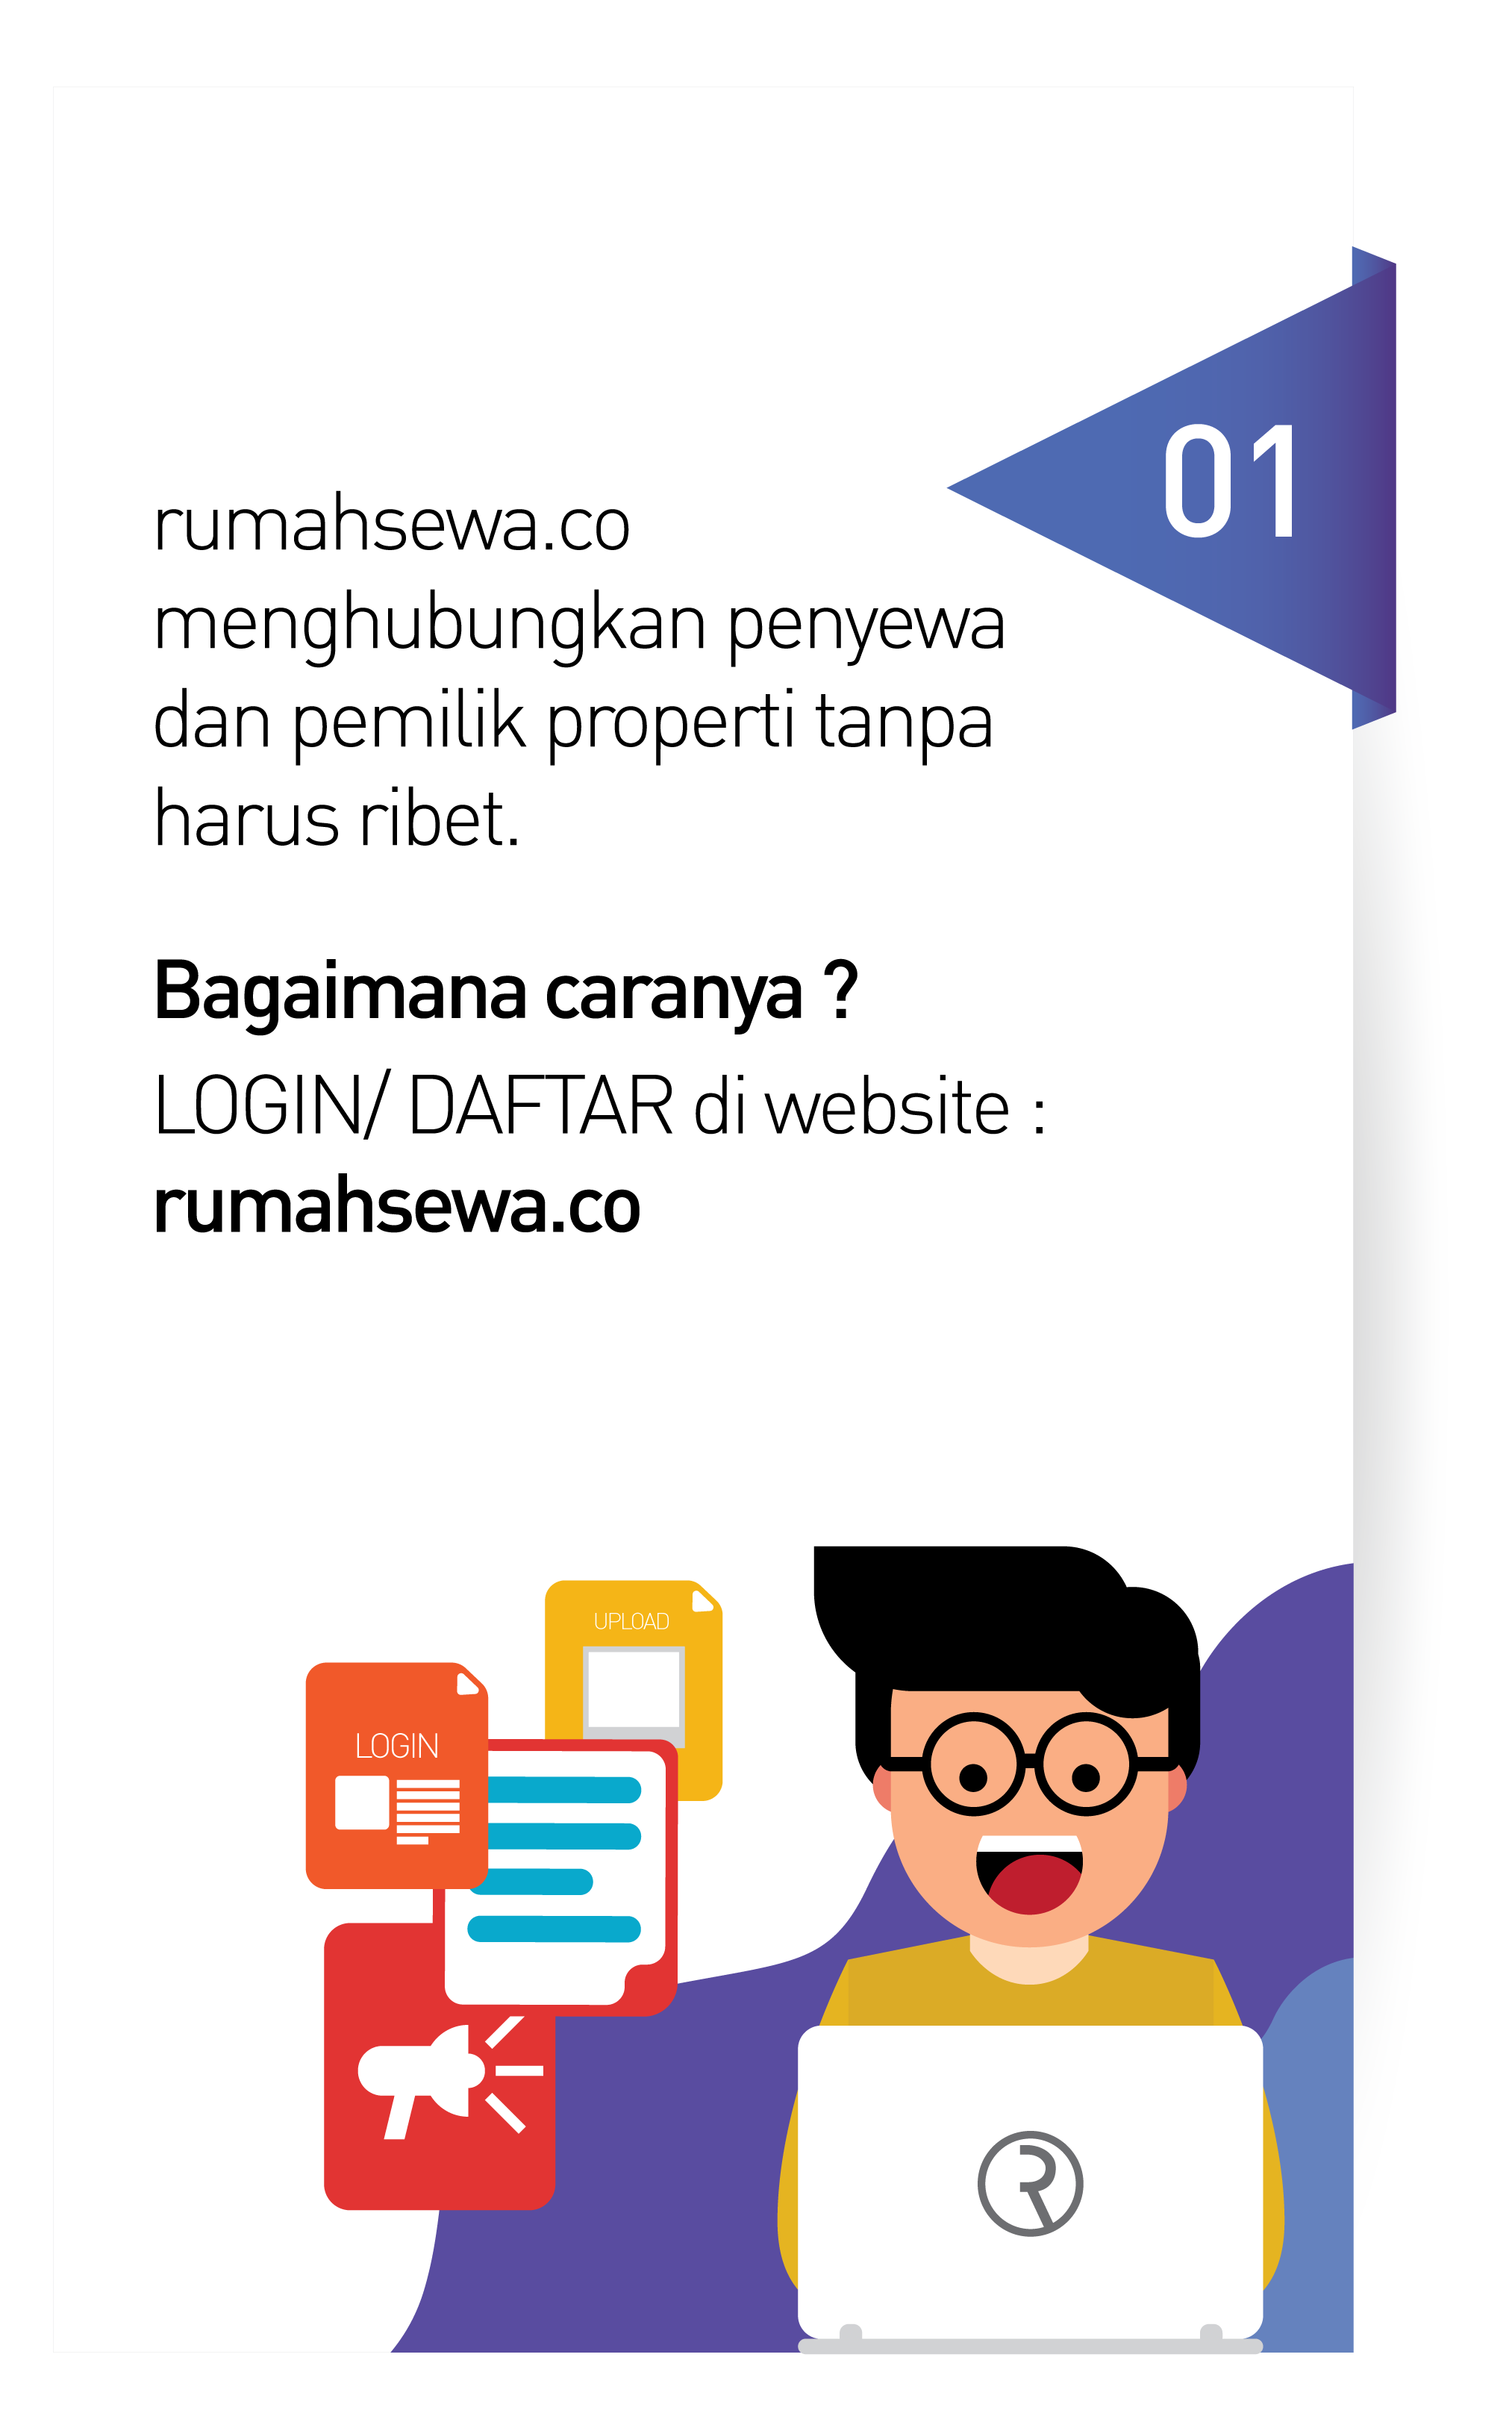 How To Use Rumahsewa.Co Step 1